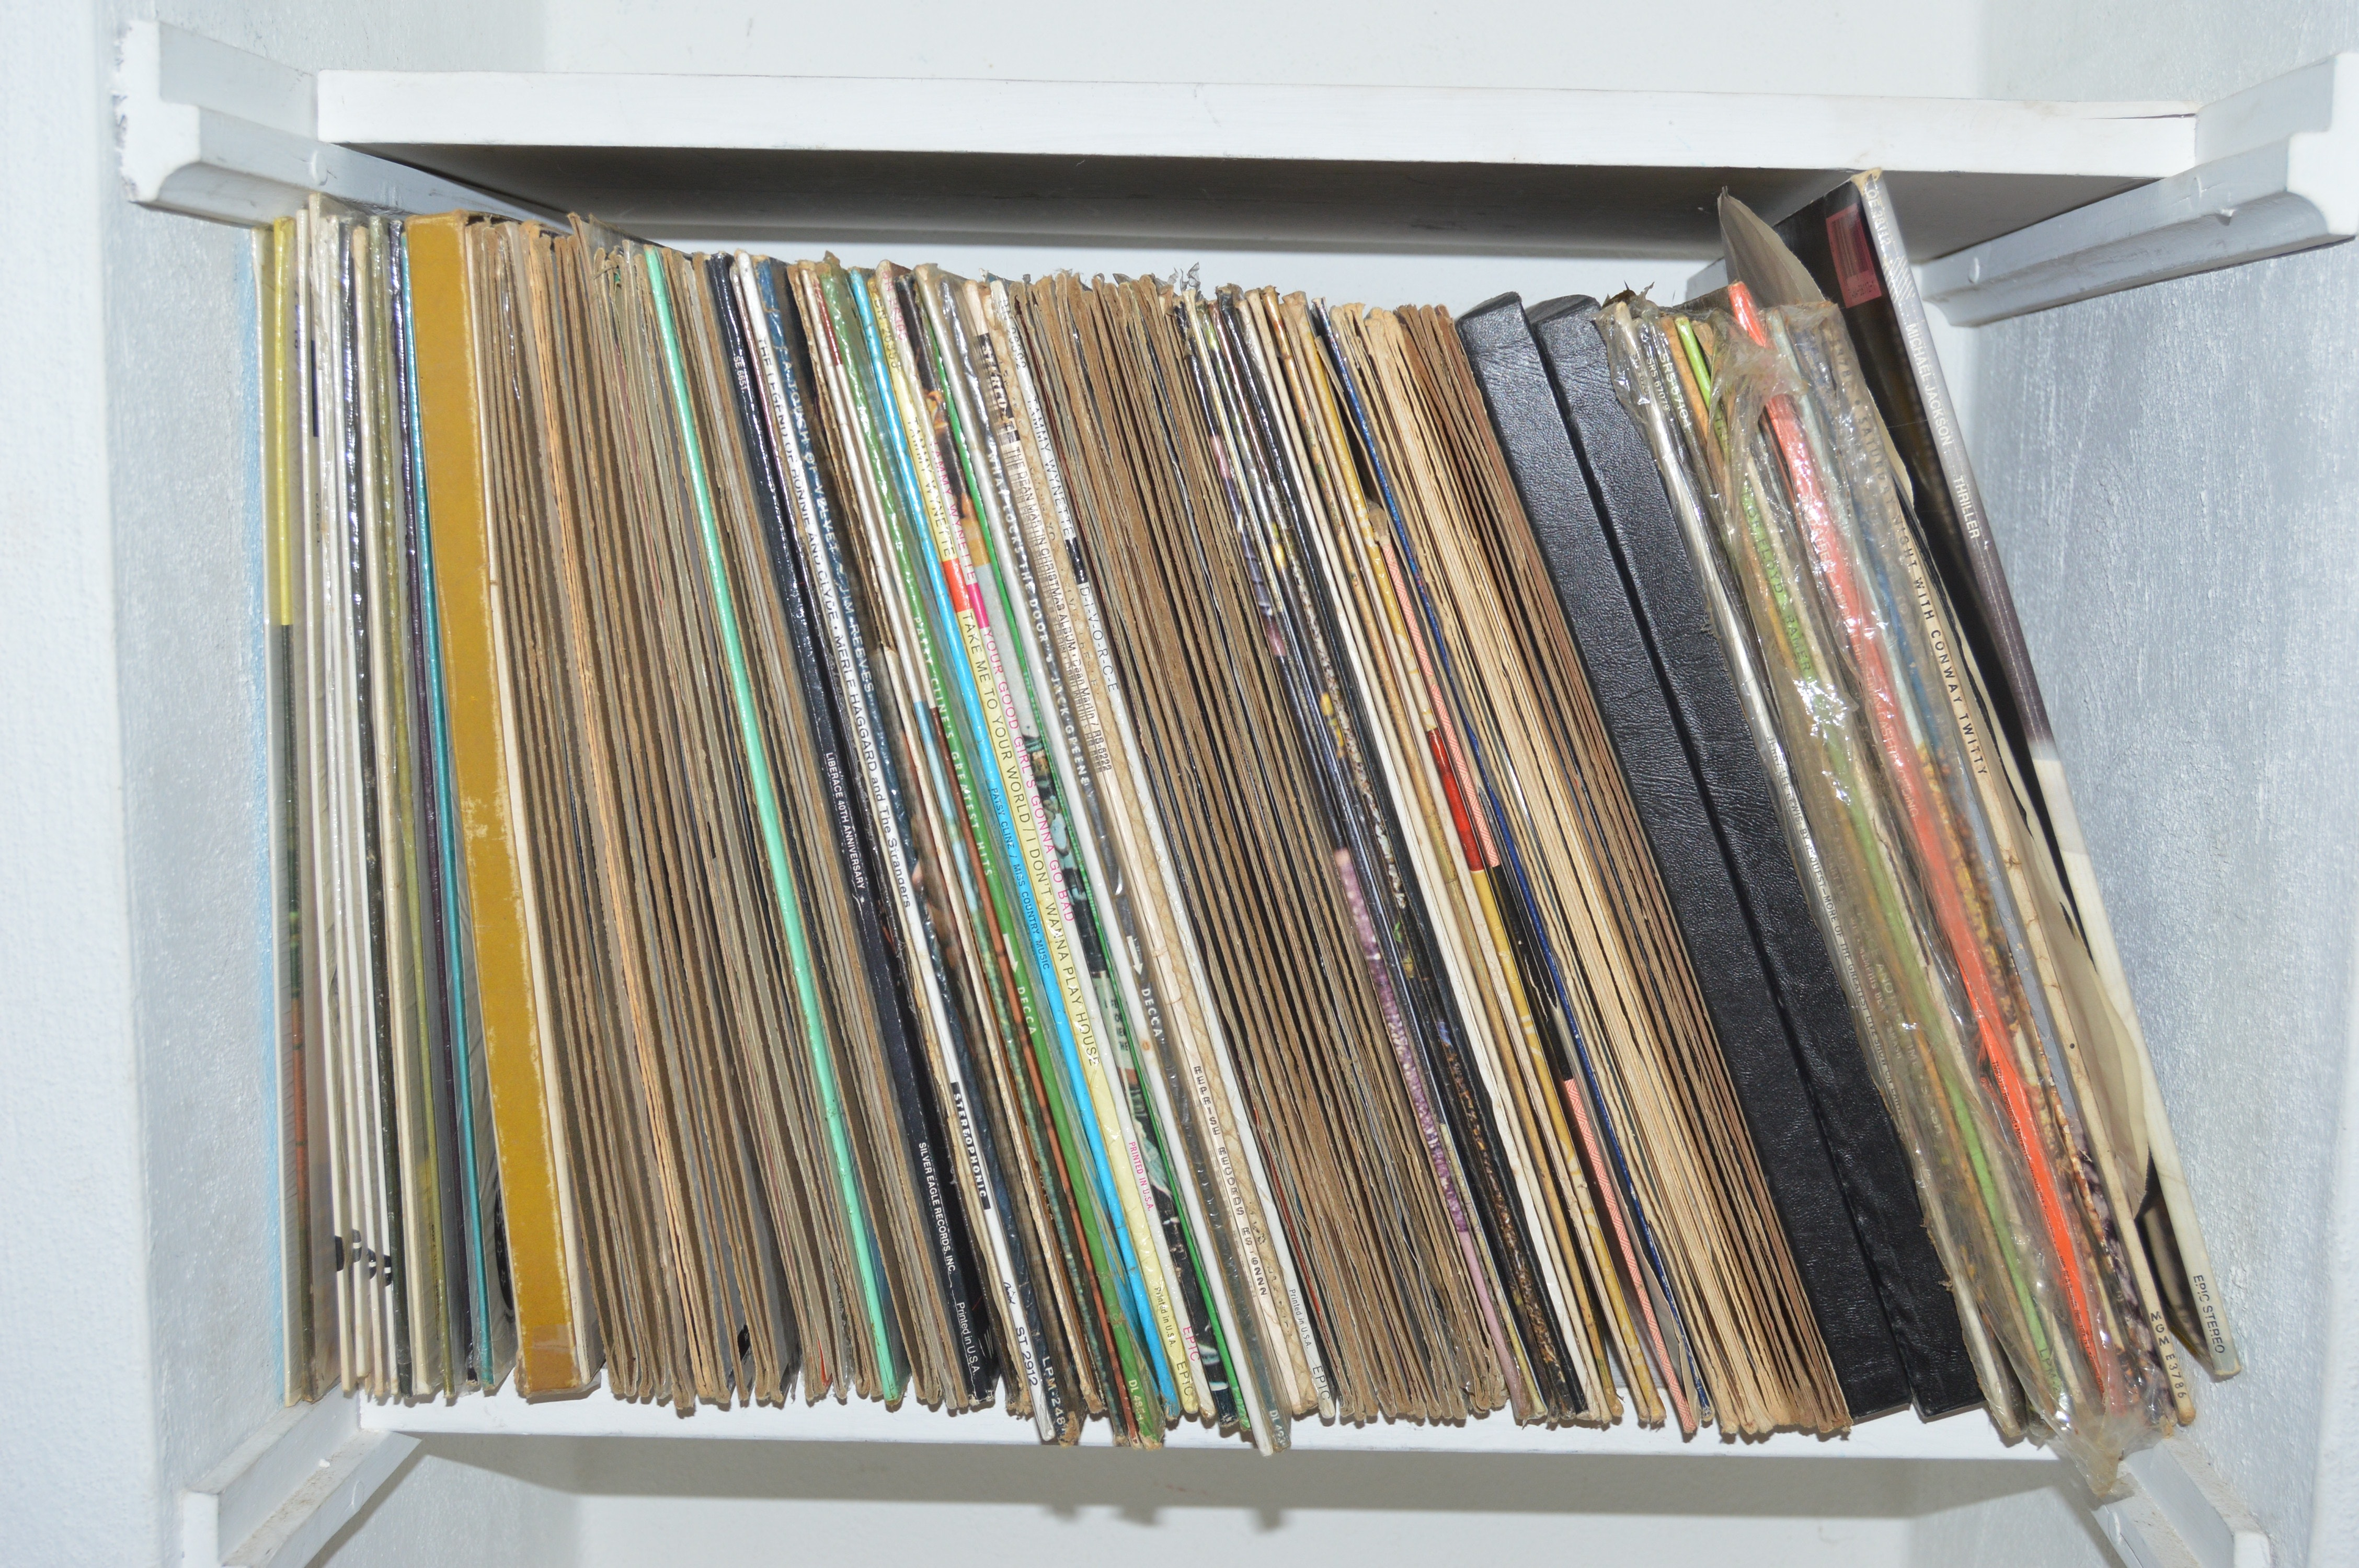 Over 100 Primarily Classic Country LPs